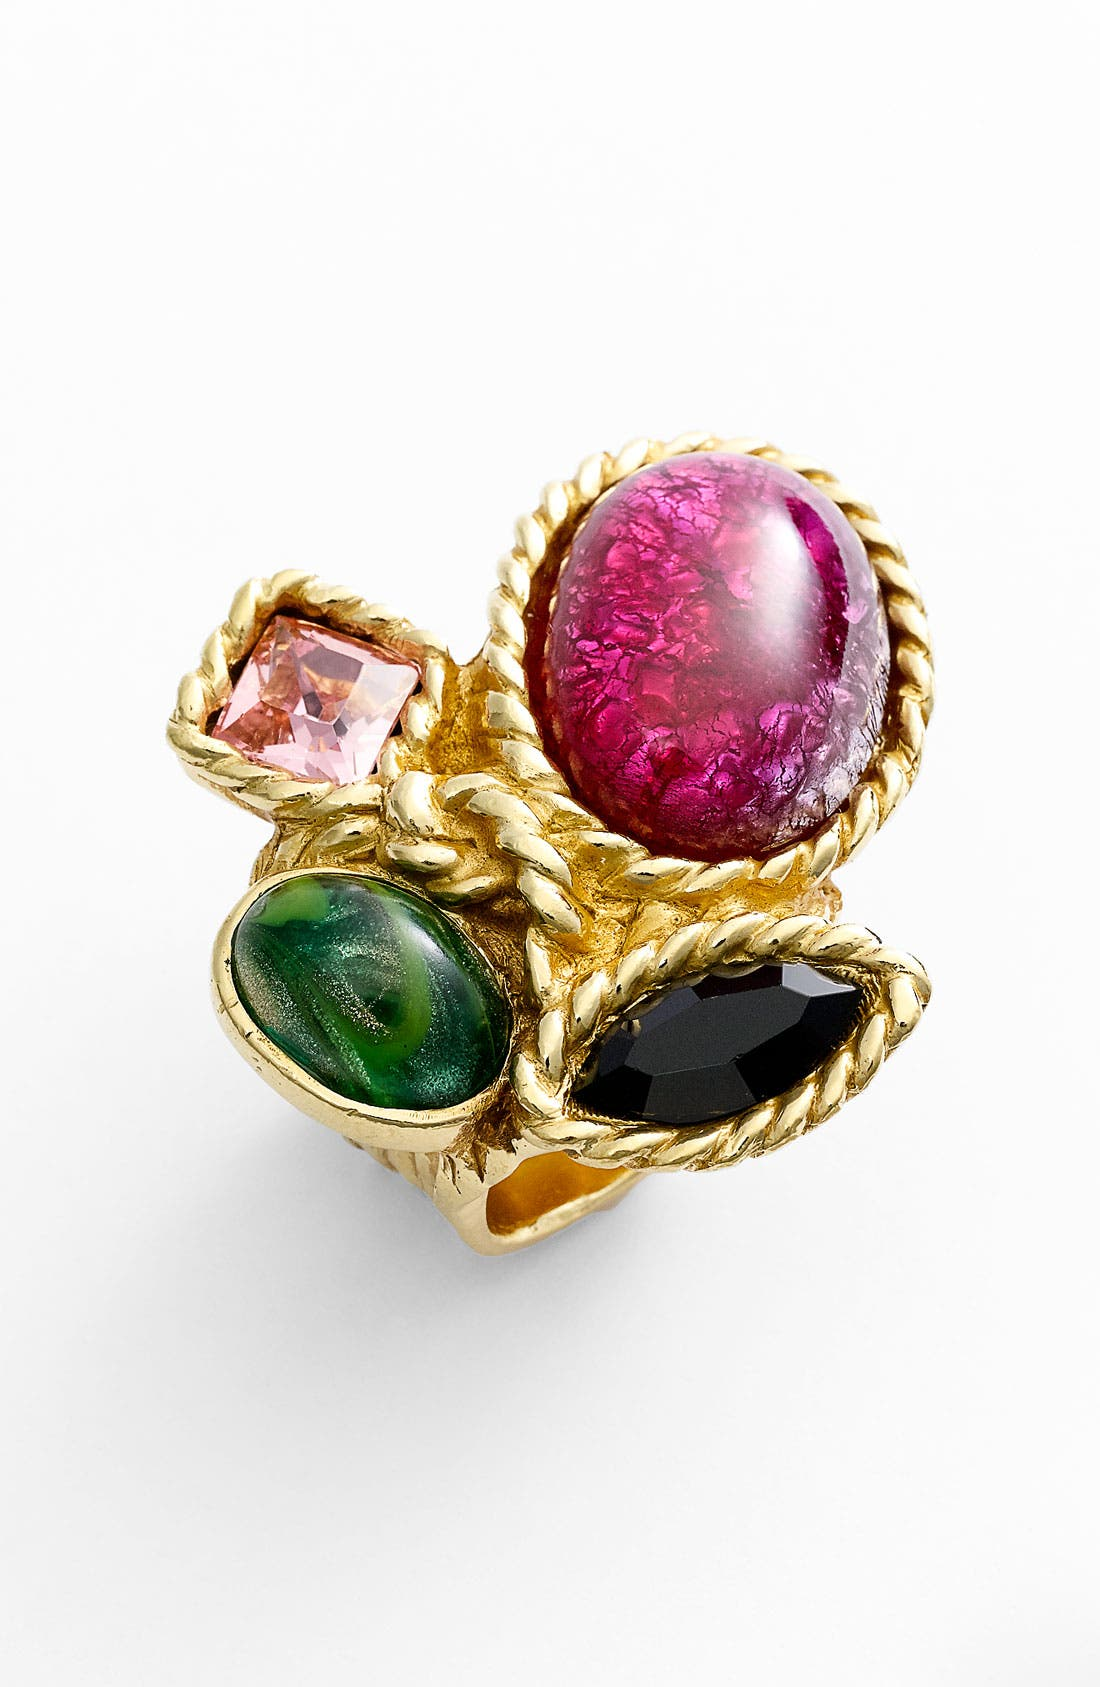 Alternate Image 1 Selected - Yves Saint Laurent 'Arty' Color Cluster Ring